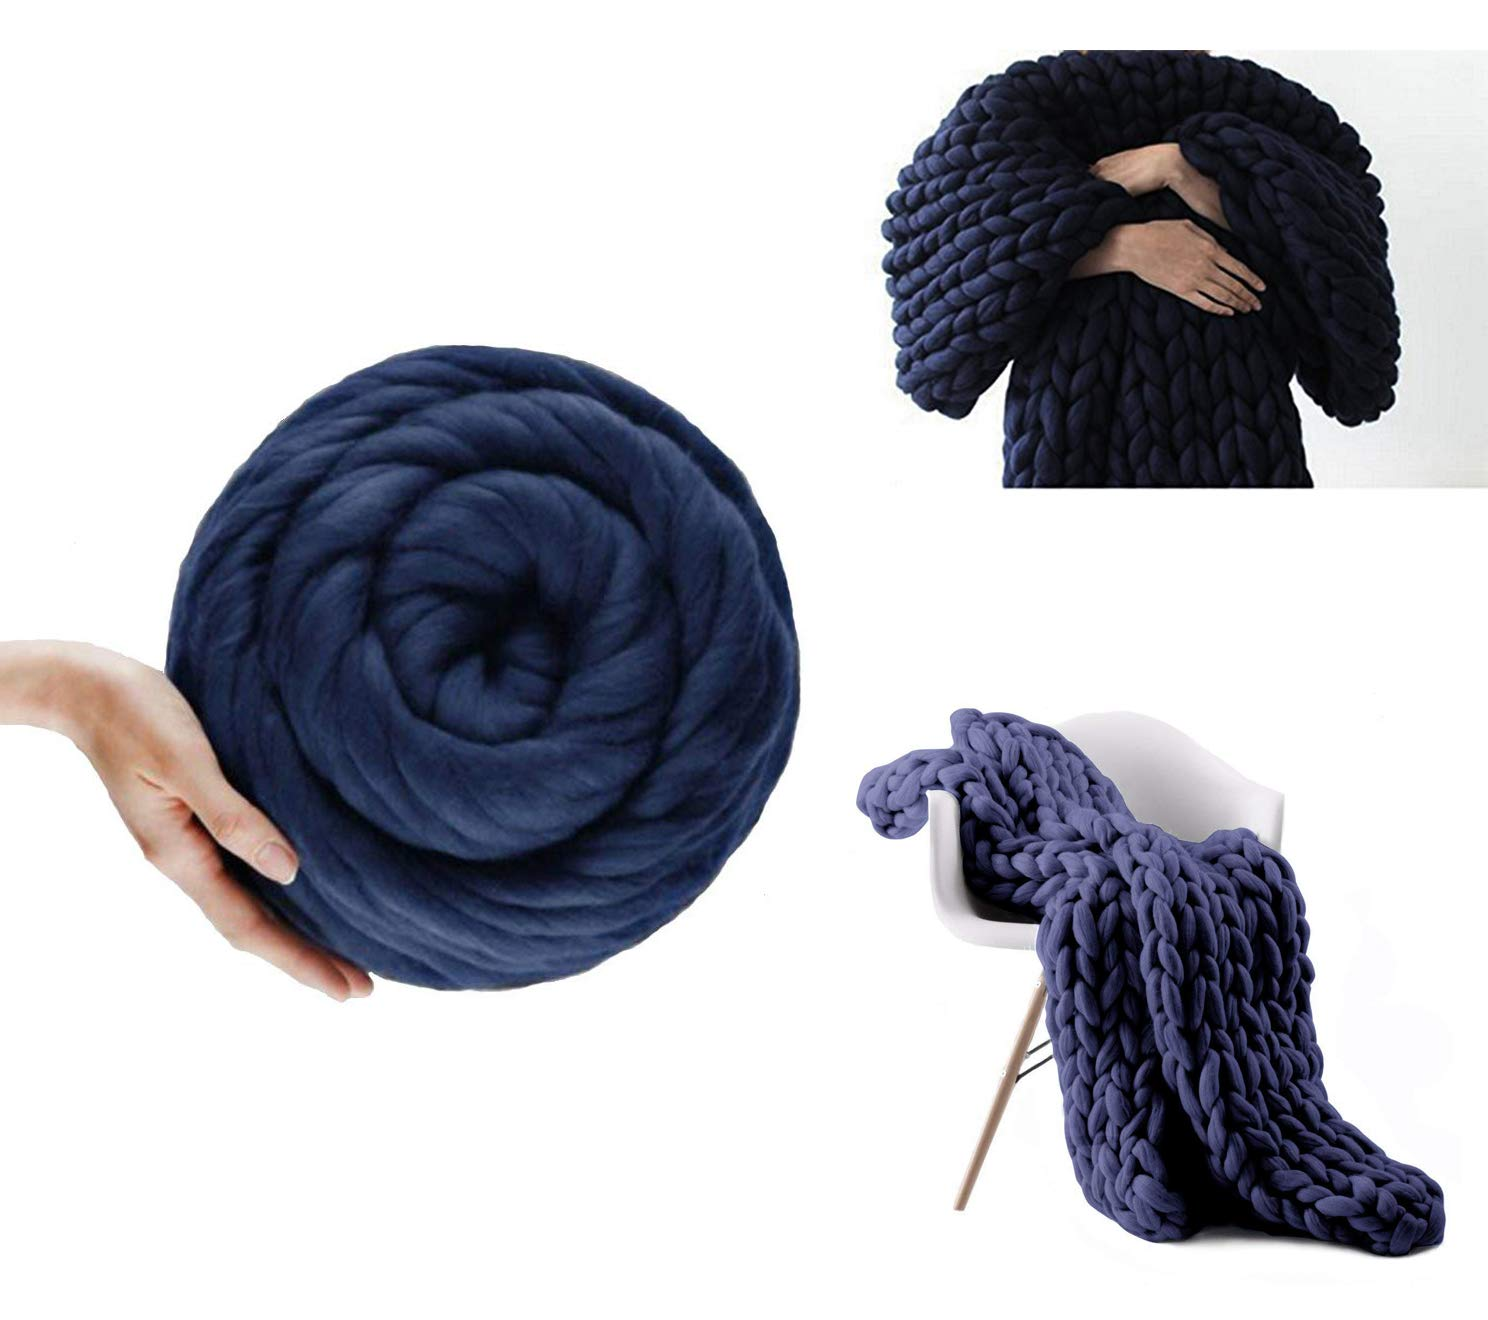 Yijiujiuer Soft Merino Chunky Wool Roving Yarn for Hand Made Arm Knitted DIY Bulky Sofa Bed Pet Throw Blankets (Navy - 6.6 lbs)